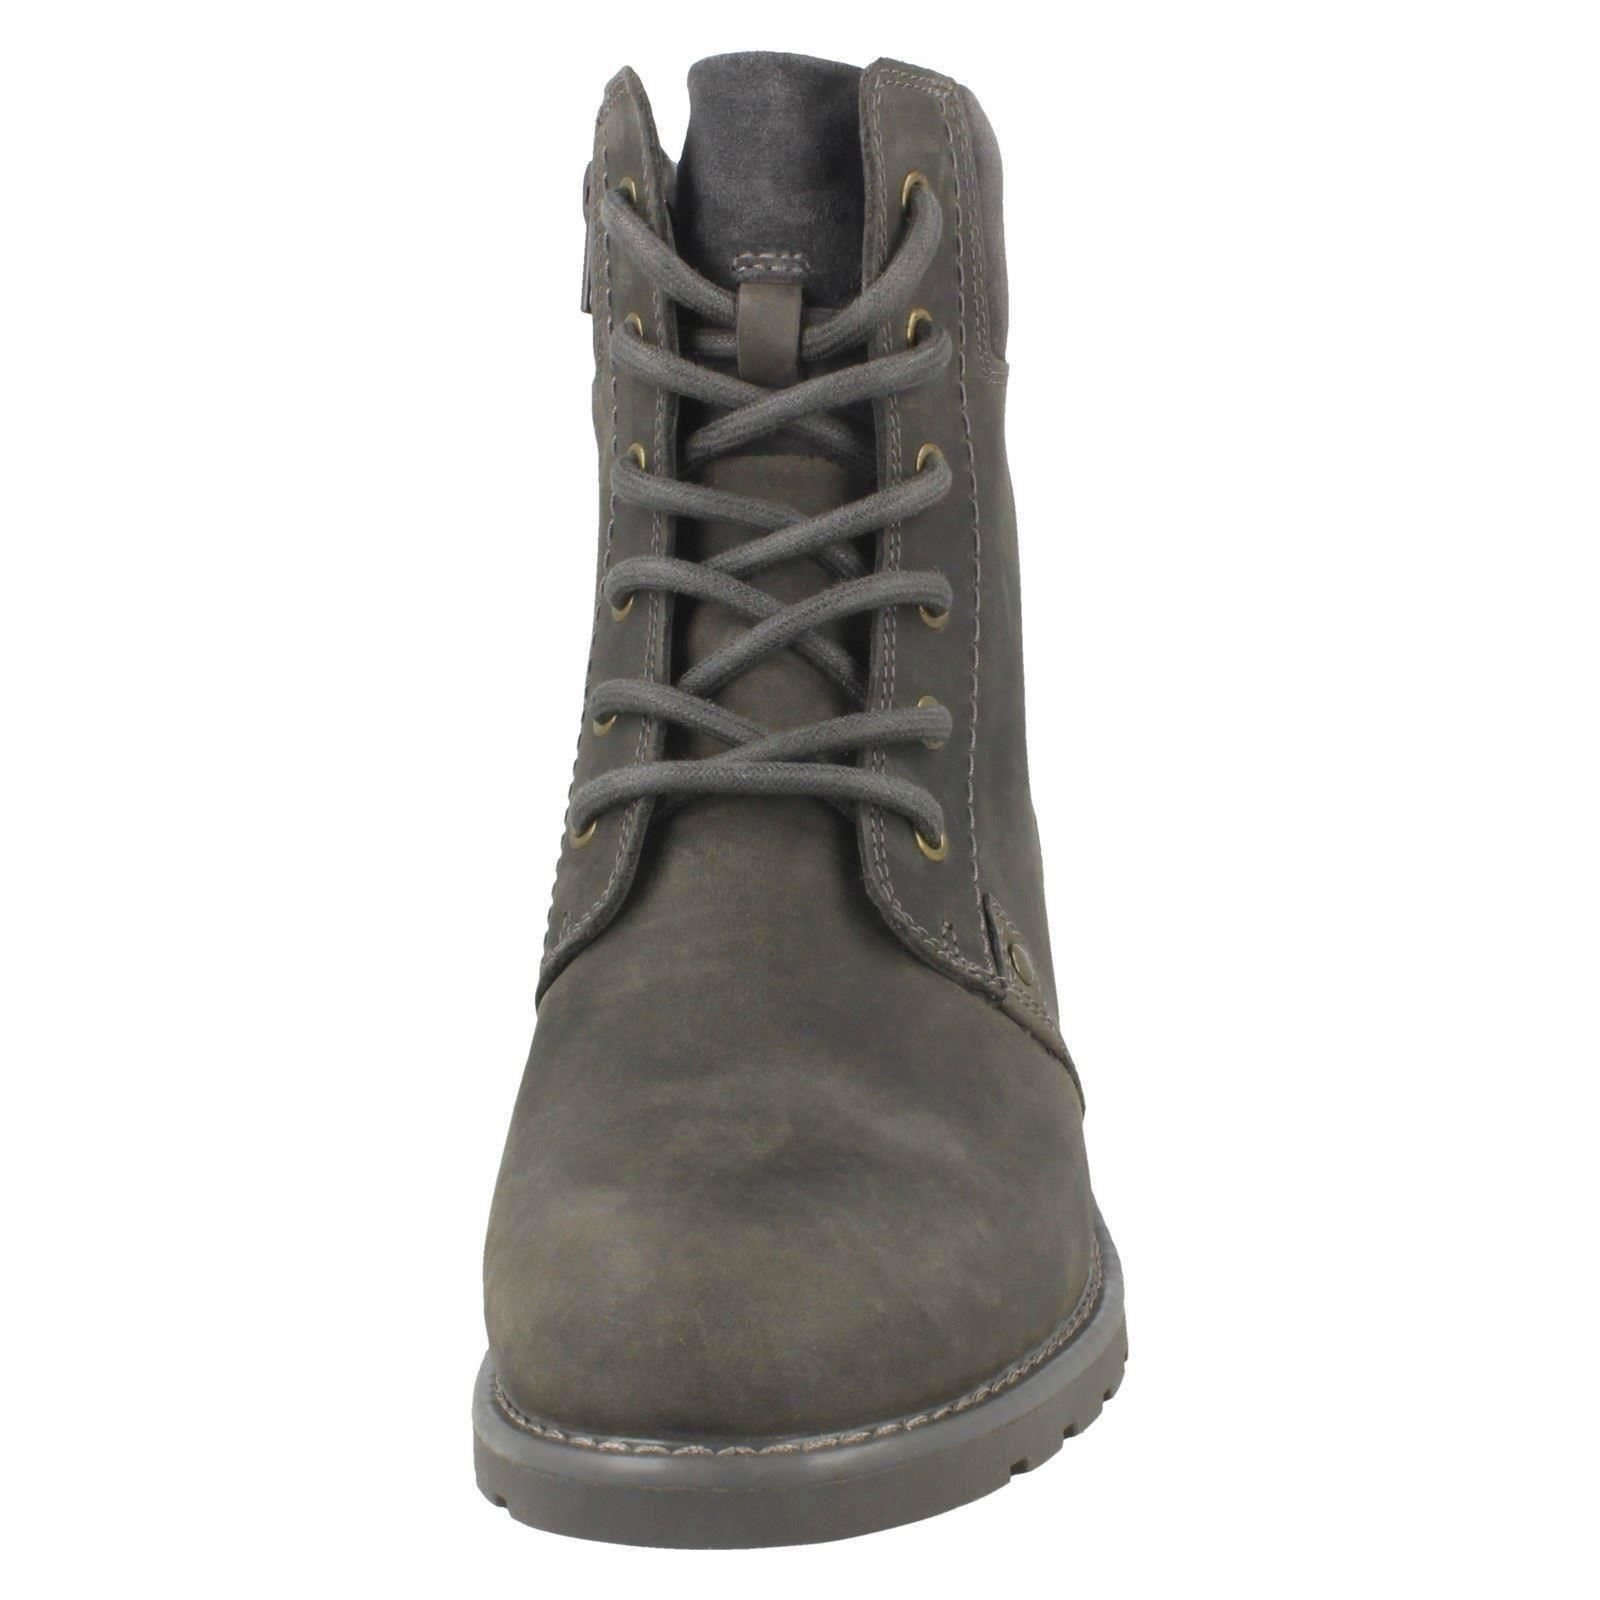 Ladies-Clarks-Casual-Lace-Up-Inside-Zip-Nubuck-Leather-Ankle-Boots-Orinoco-Spice thumbnail 45